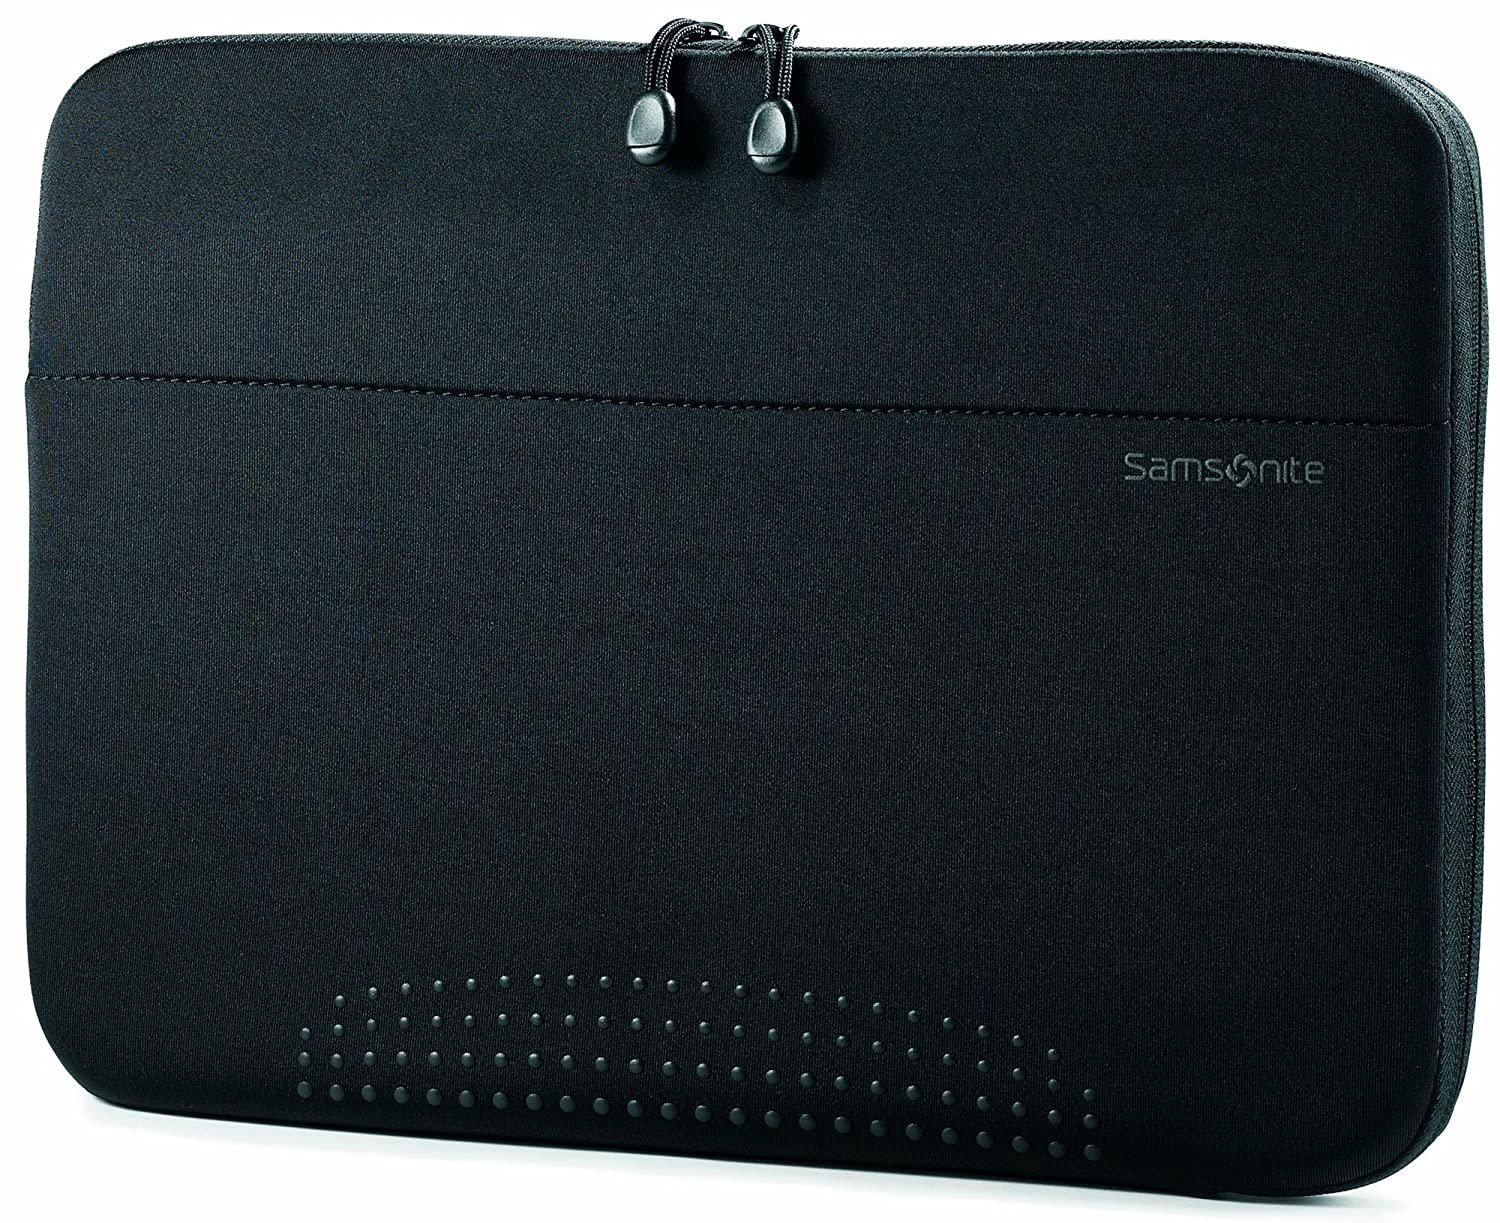 Samsonite Aramon2 Shuttle Shoulder Bag (Black) For 17 Inch Laptop 91